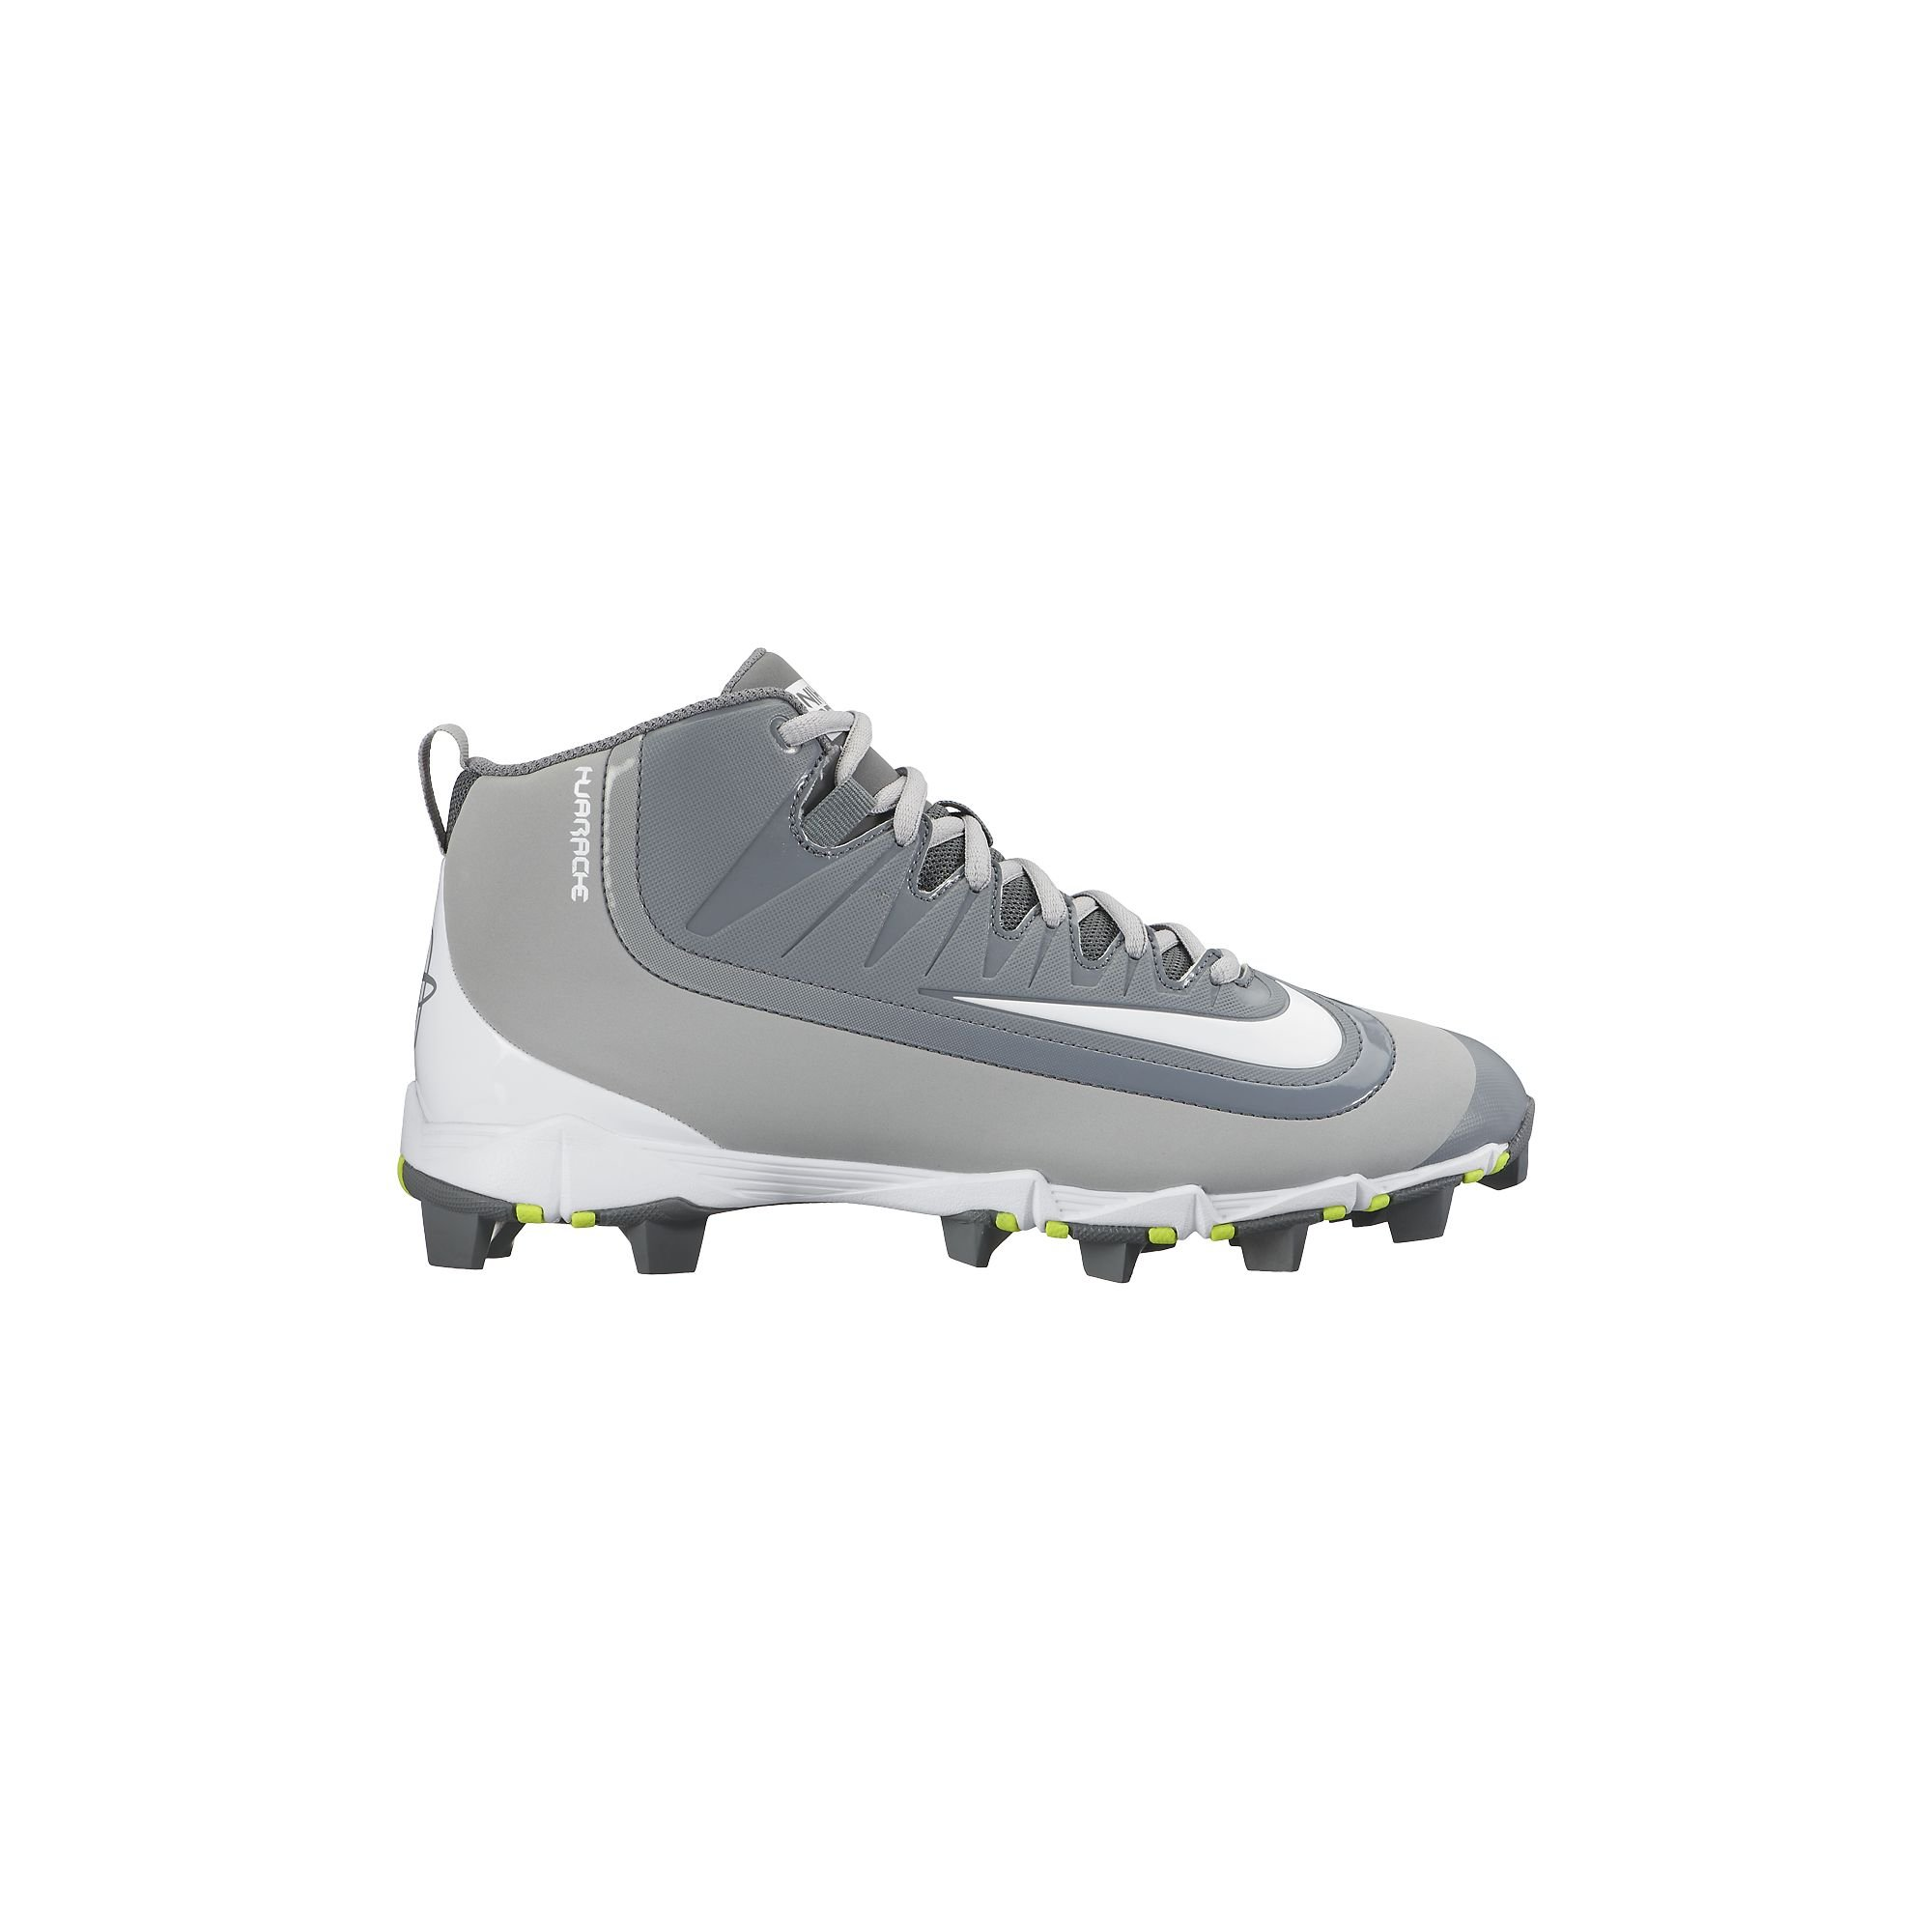 c16a5936465 Galleon - Nike Men s Huarache 2KFilth Keystone Mid Baseball Cleat Cool  Grey Platinum White Size 8 M US